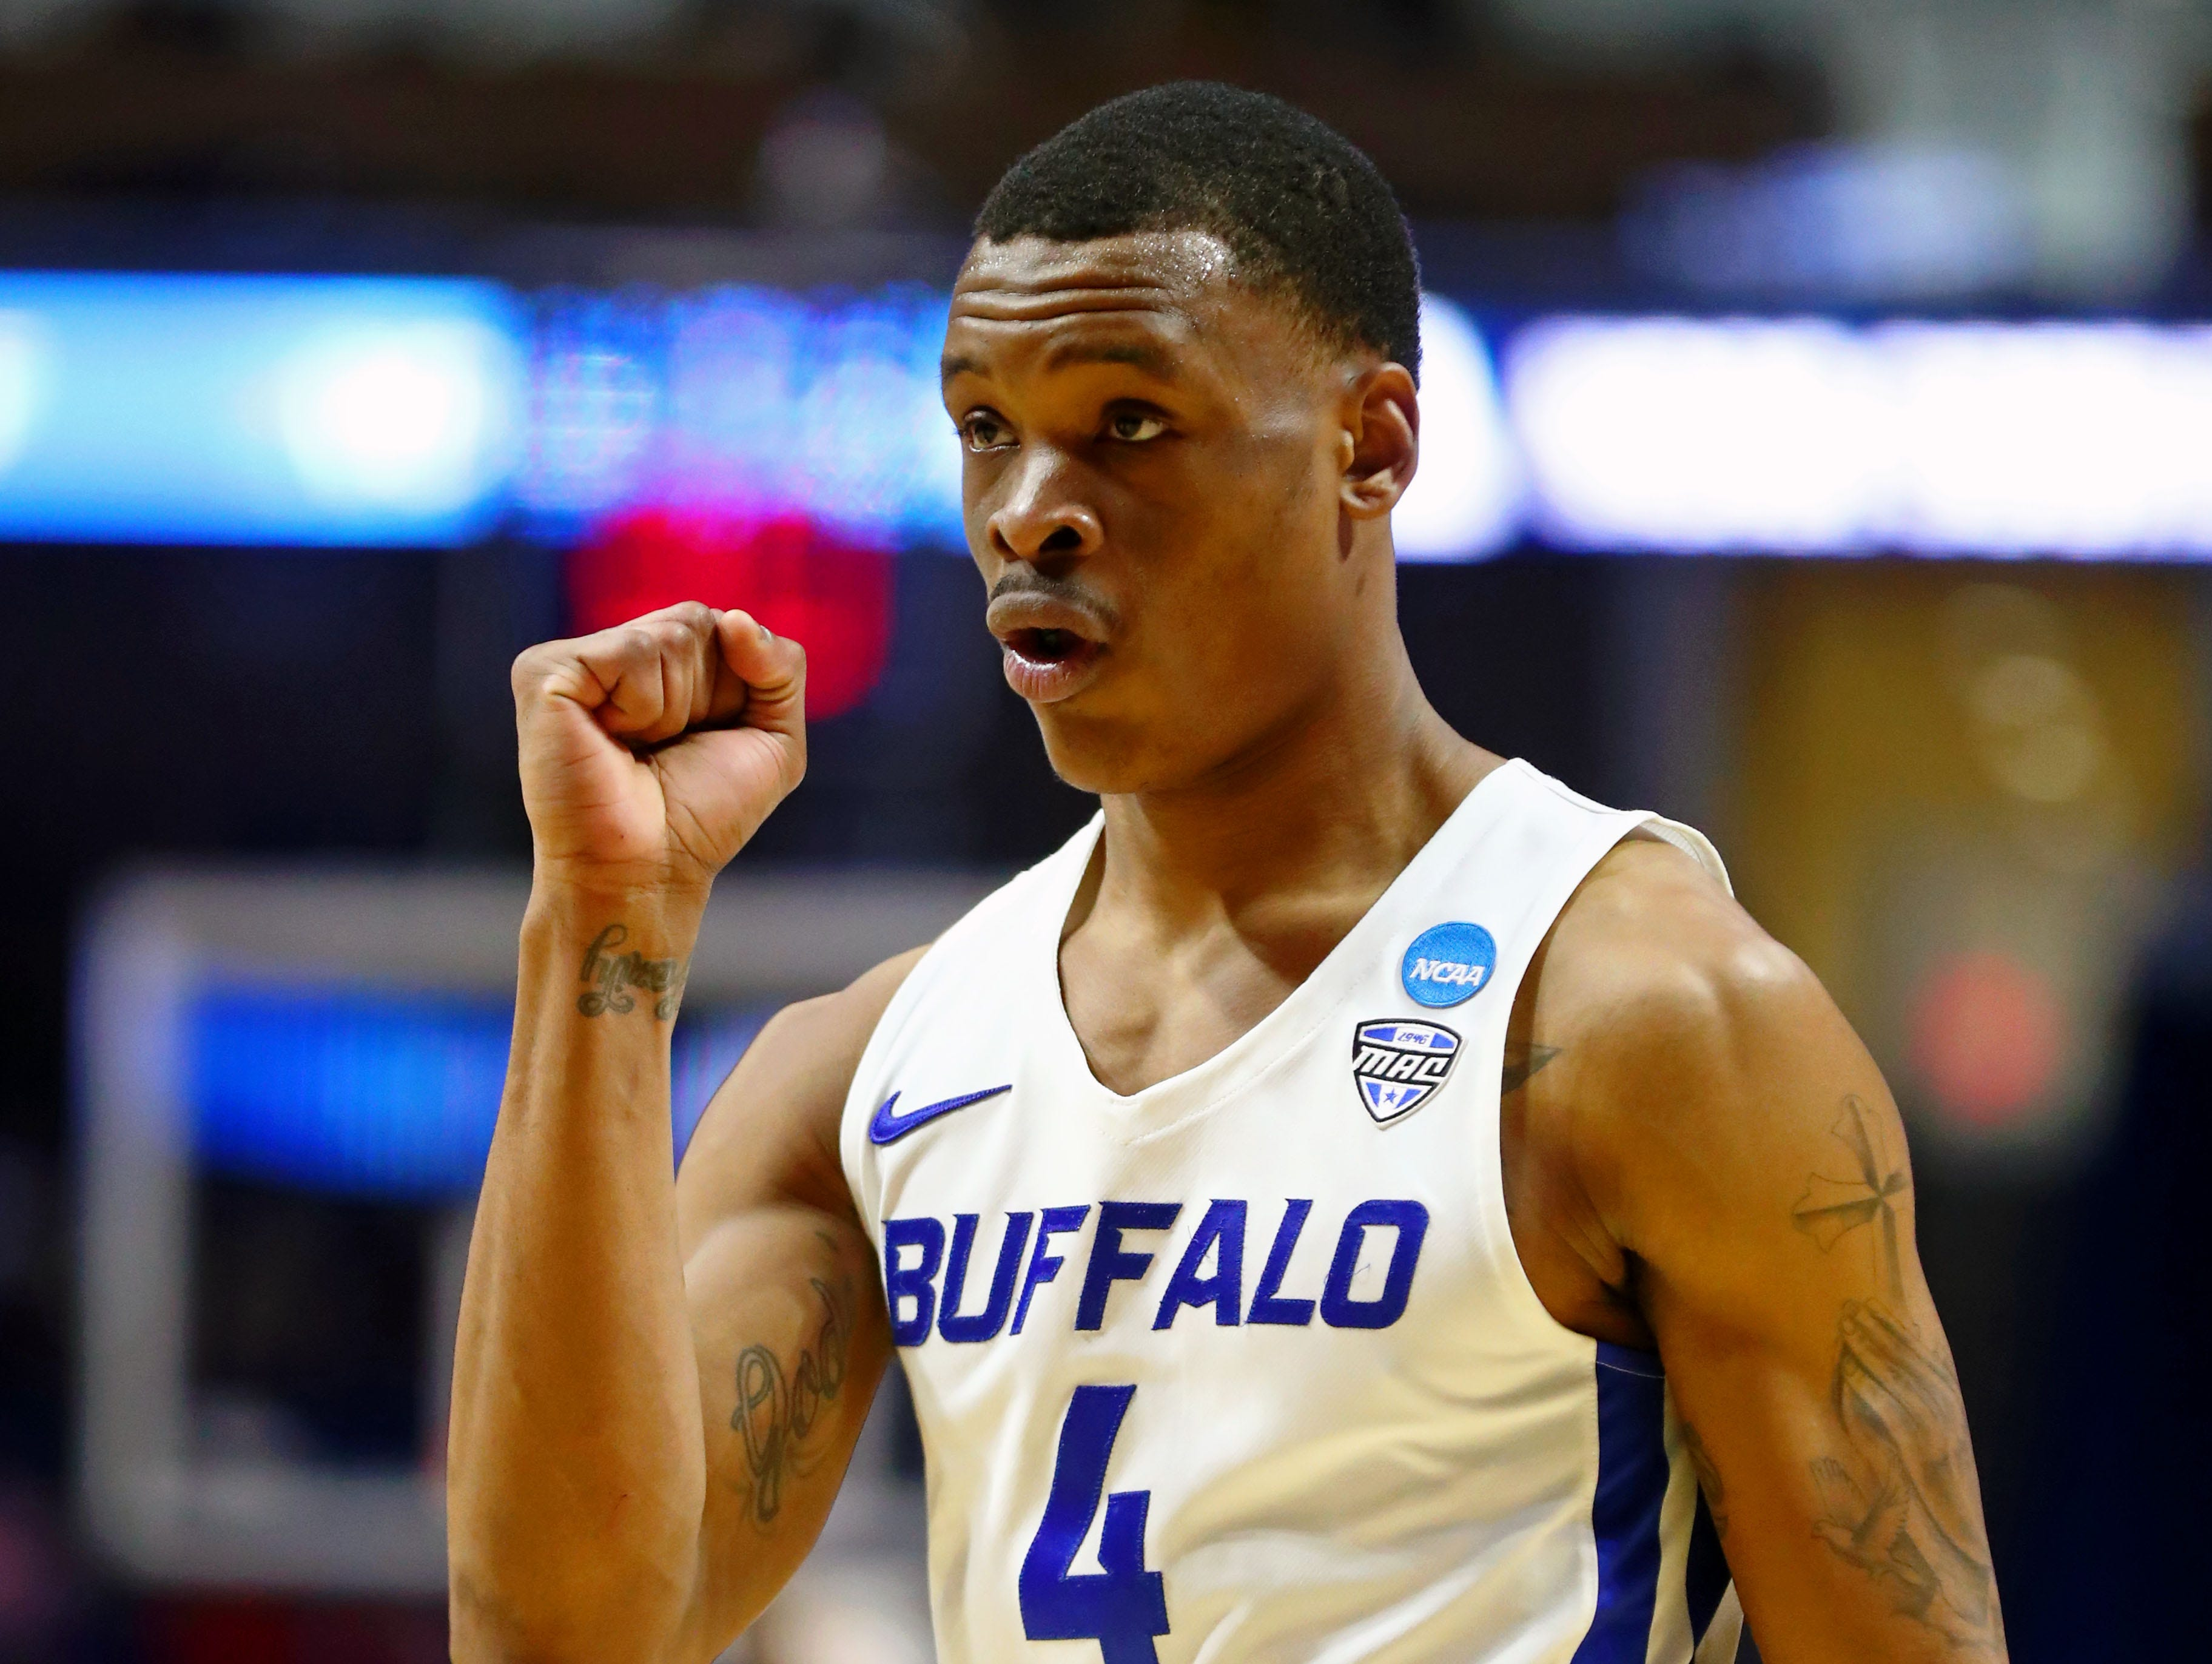 Mar 22, 2019; Tulsa, OK, USA; Buffalo Bulls guard Davonta Jordan (4) gestures after a play during the second half in their game against the Arizona State Sun Devils in the first round of the 2019 NCAA Tournament at BOK Center. The Buffalo Bulls won 91-74. Mandatory Credit: Mark J. Rebilas-USA TODAY Sports